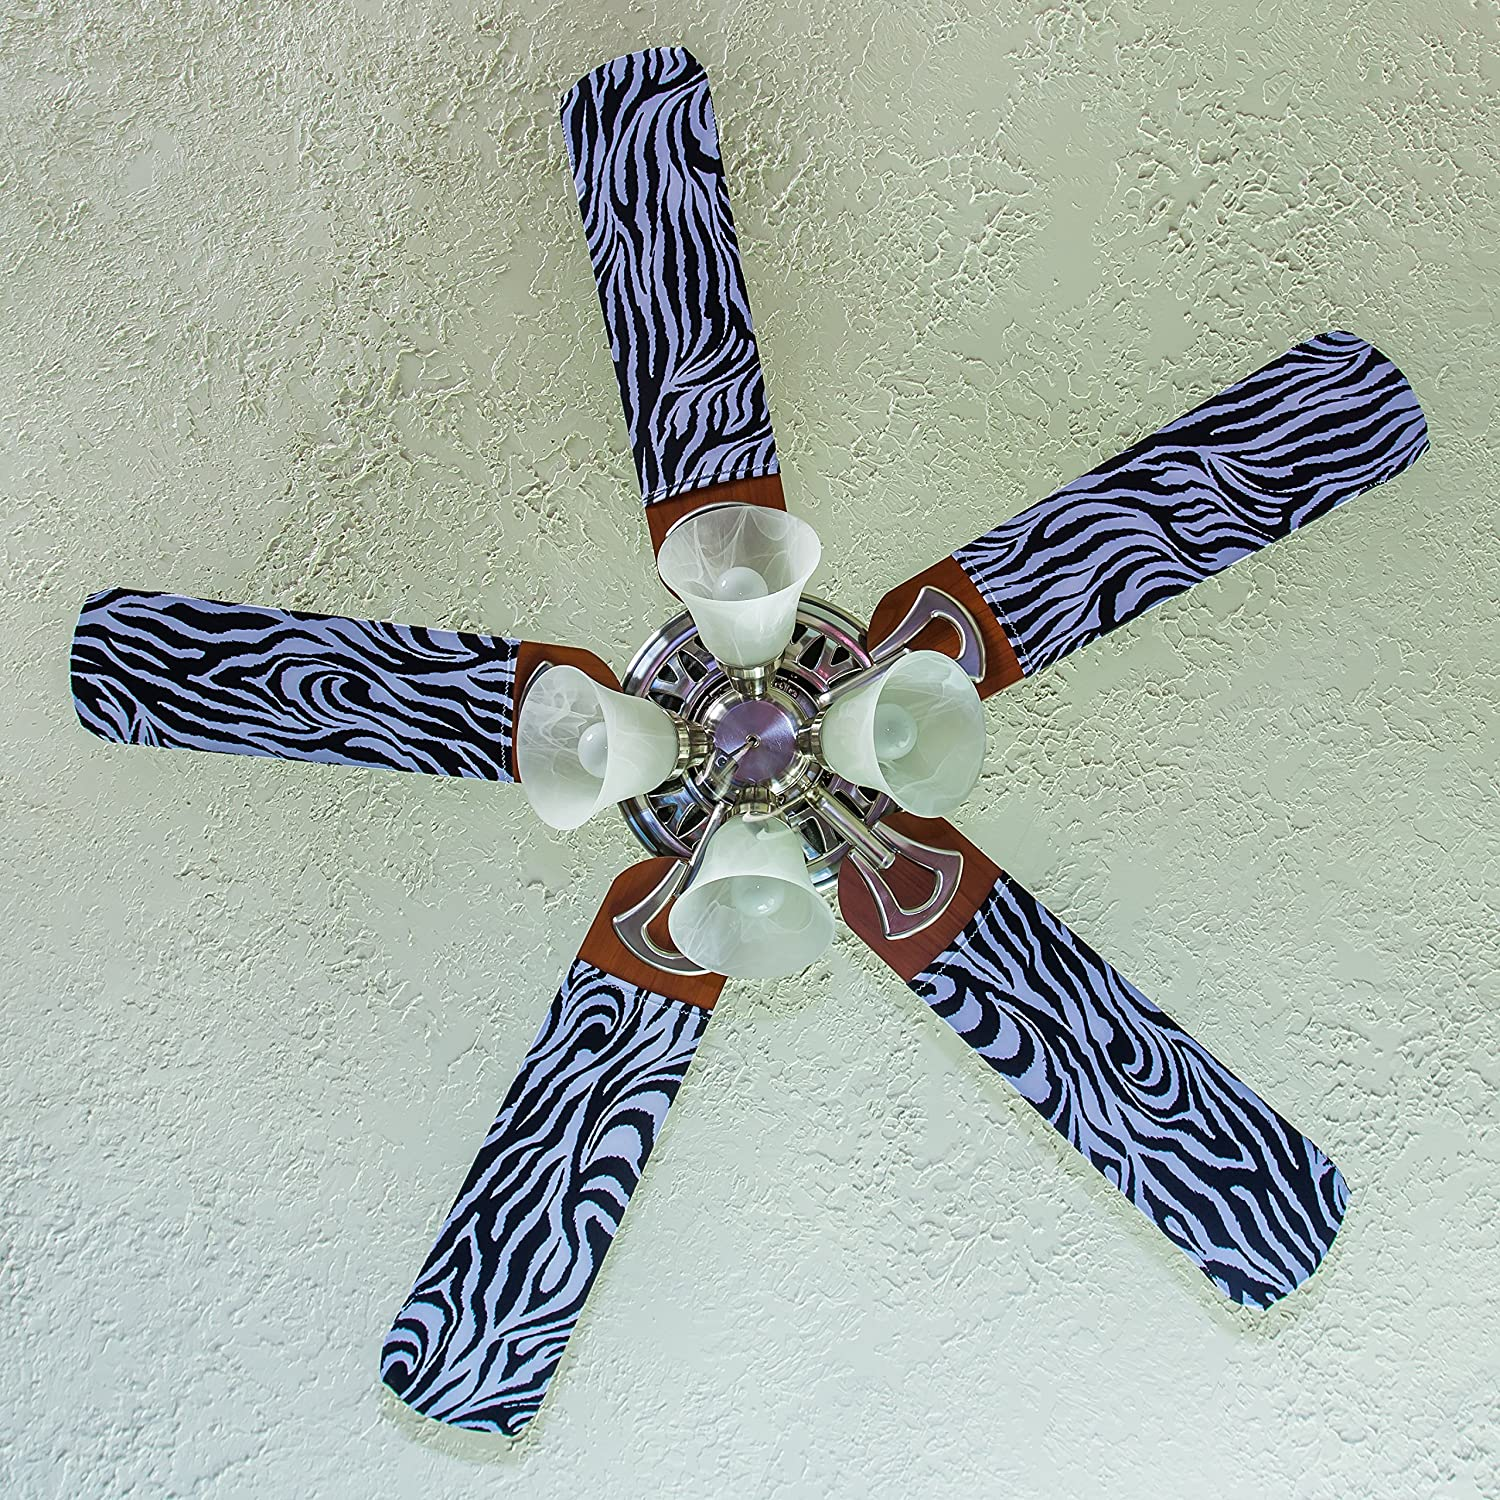 Small Blade Ceiling Fan Photo Album Home Design Ideas